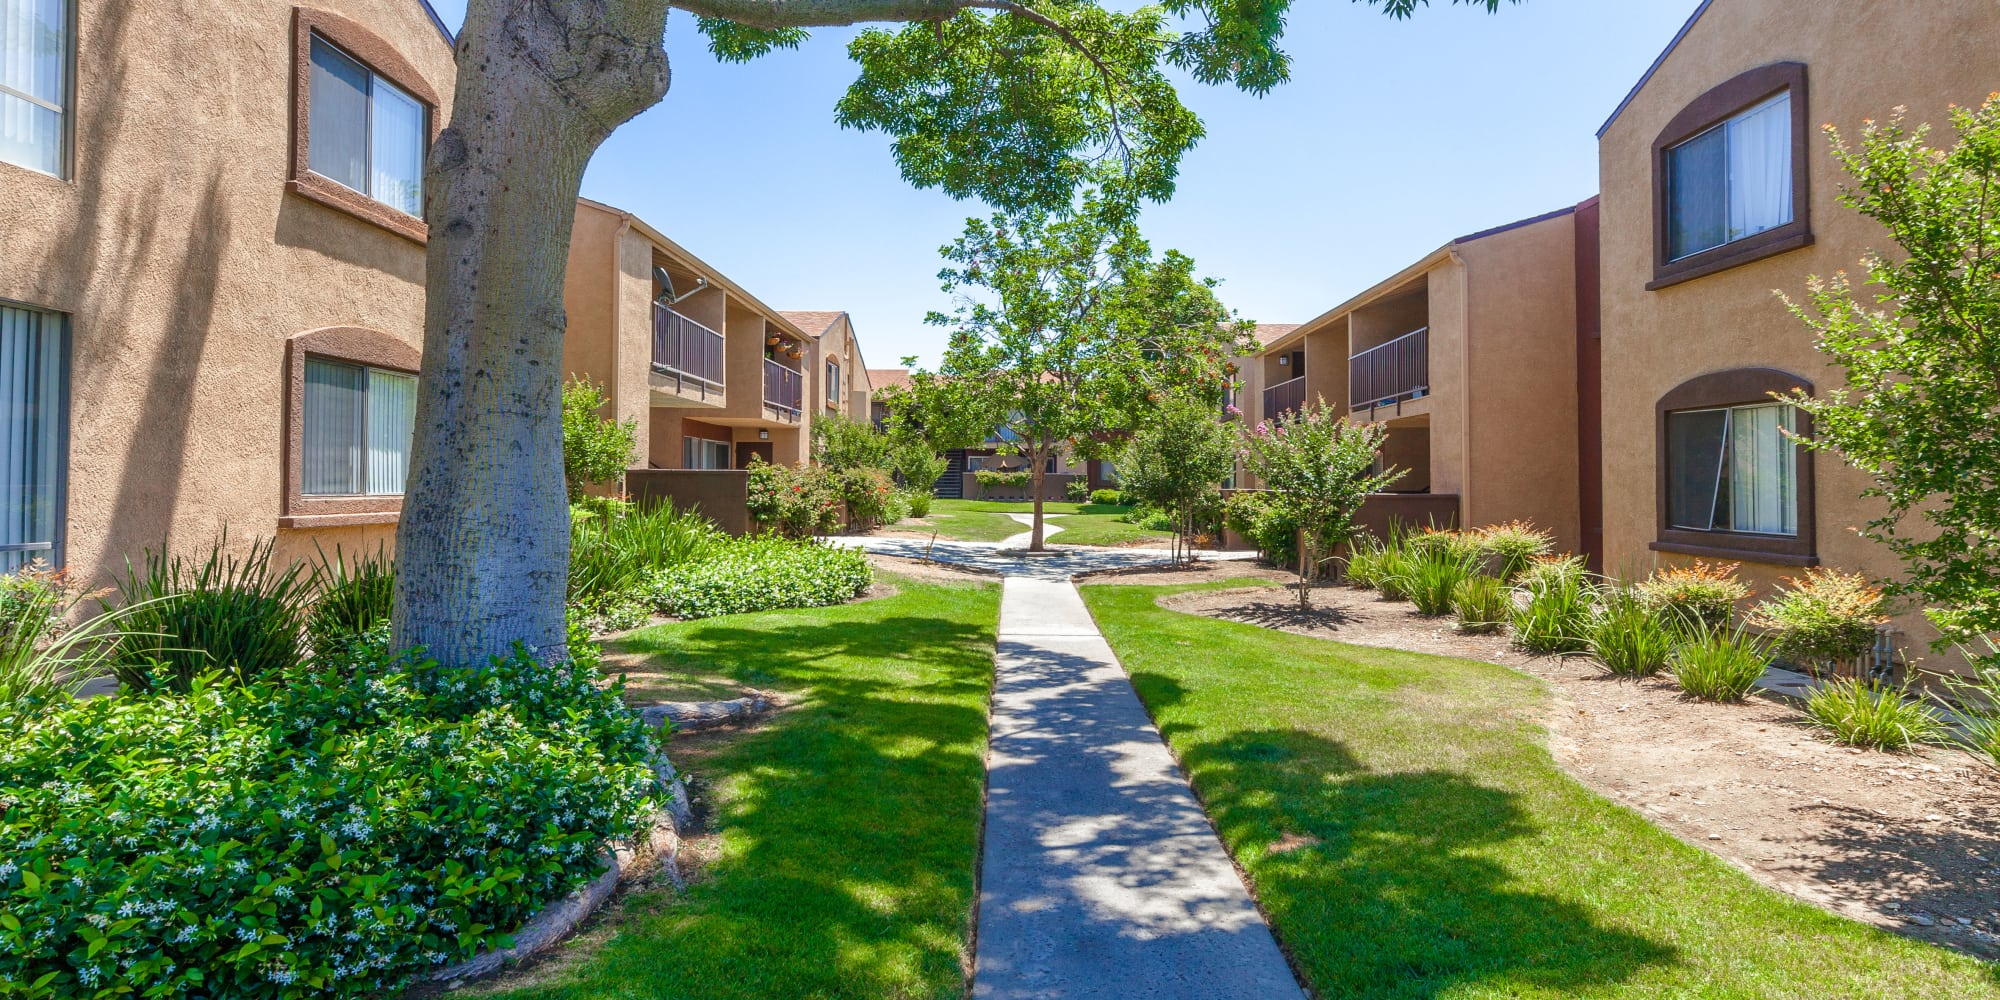 Beautifully manicured outdoor walking path at West Fifth Apartments in Ontario, California